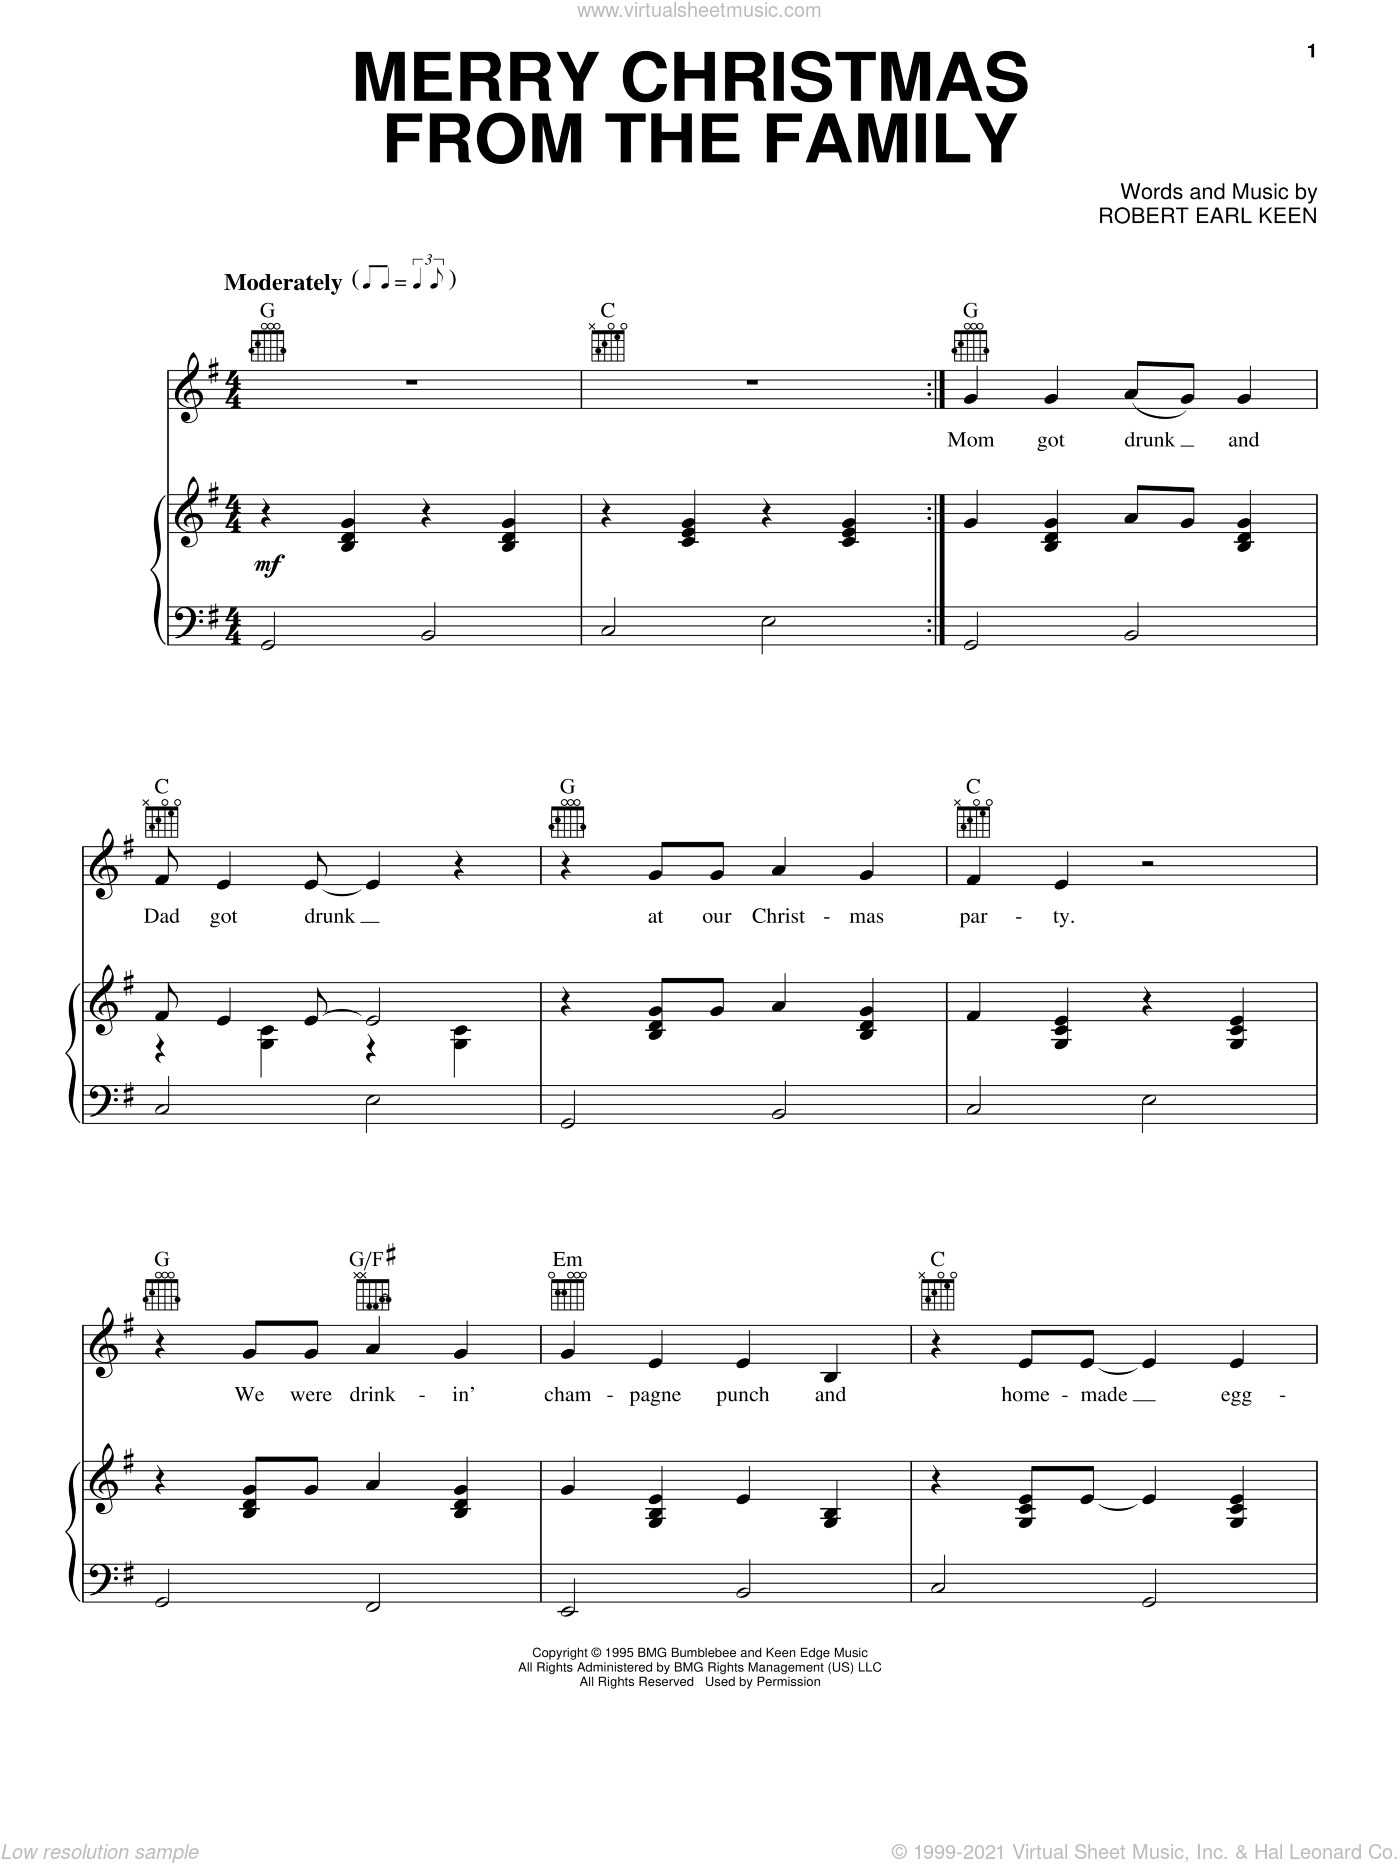 Merry Christmas From The Family sheet music for voice, piano or guitar by Robert Earl Keen, intermediate skill level